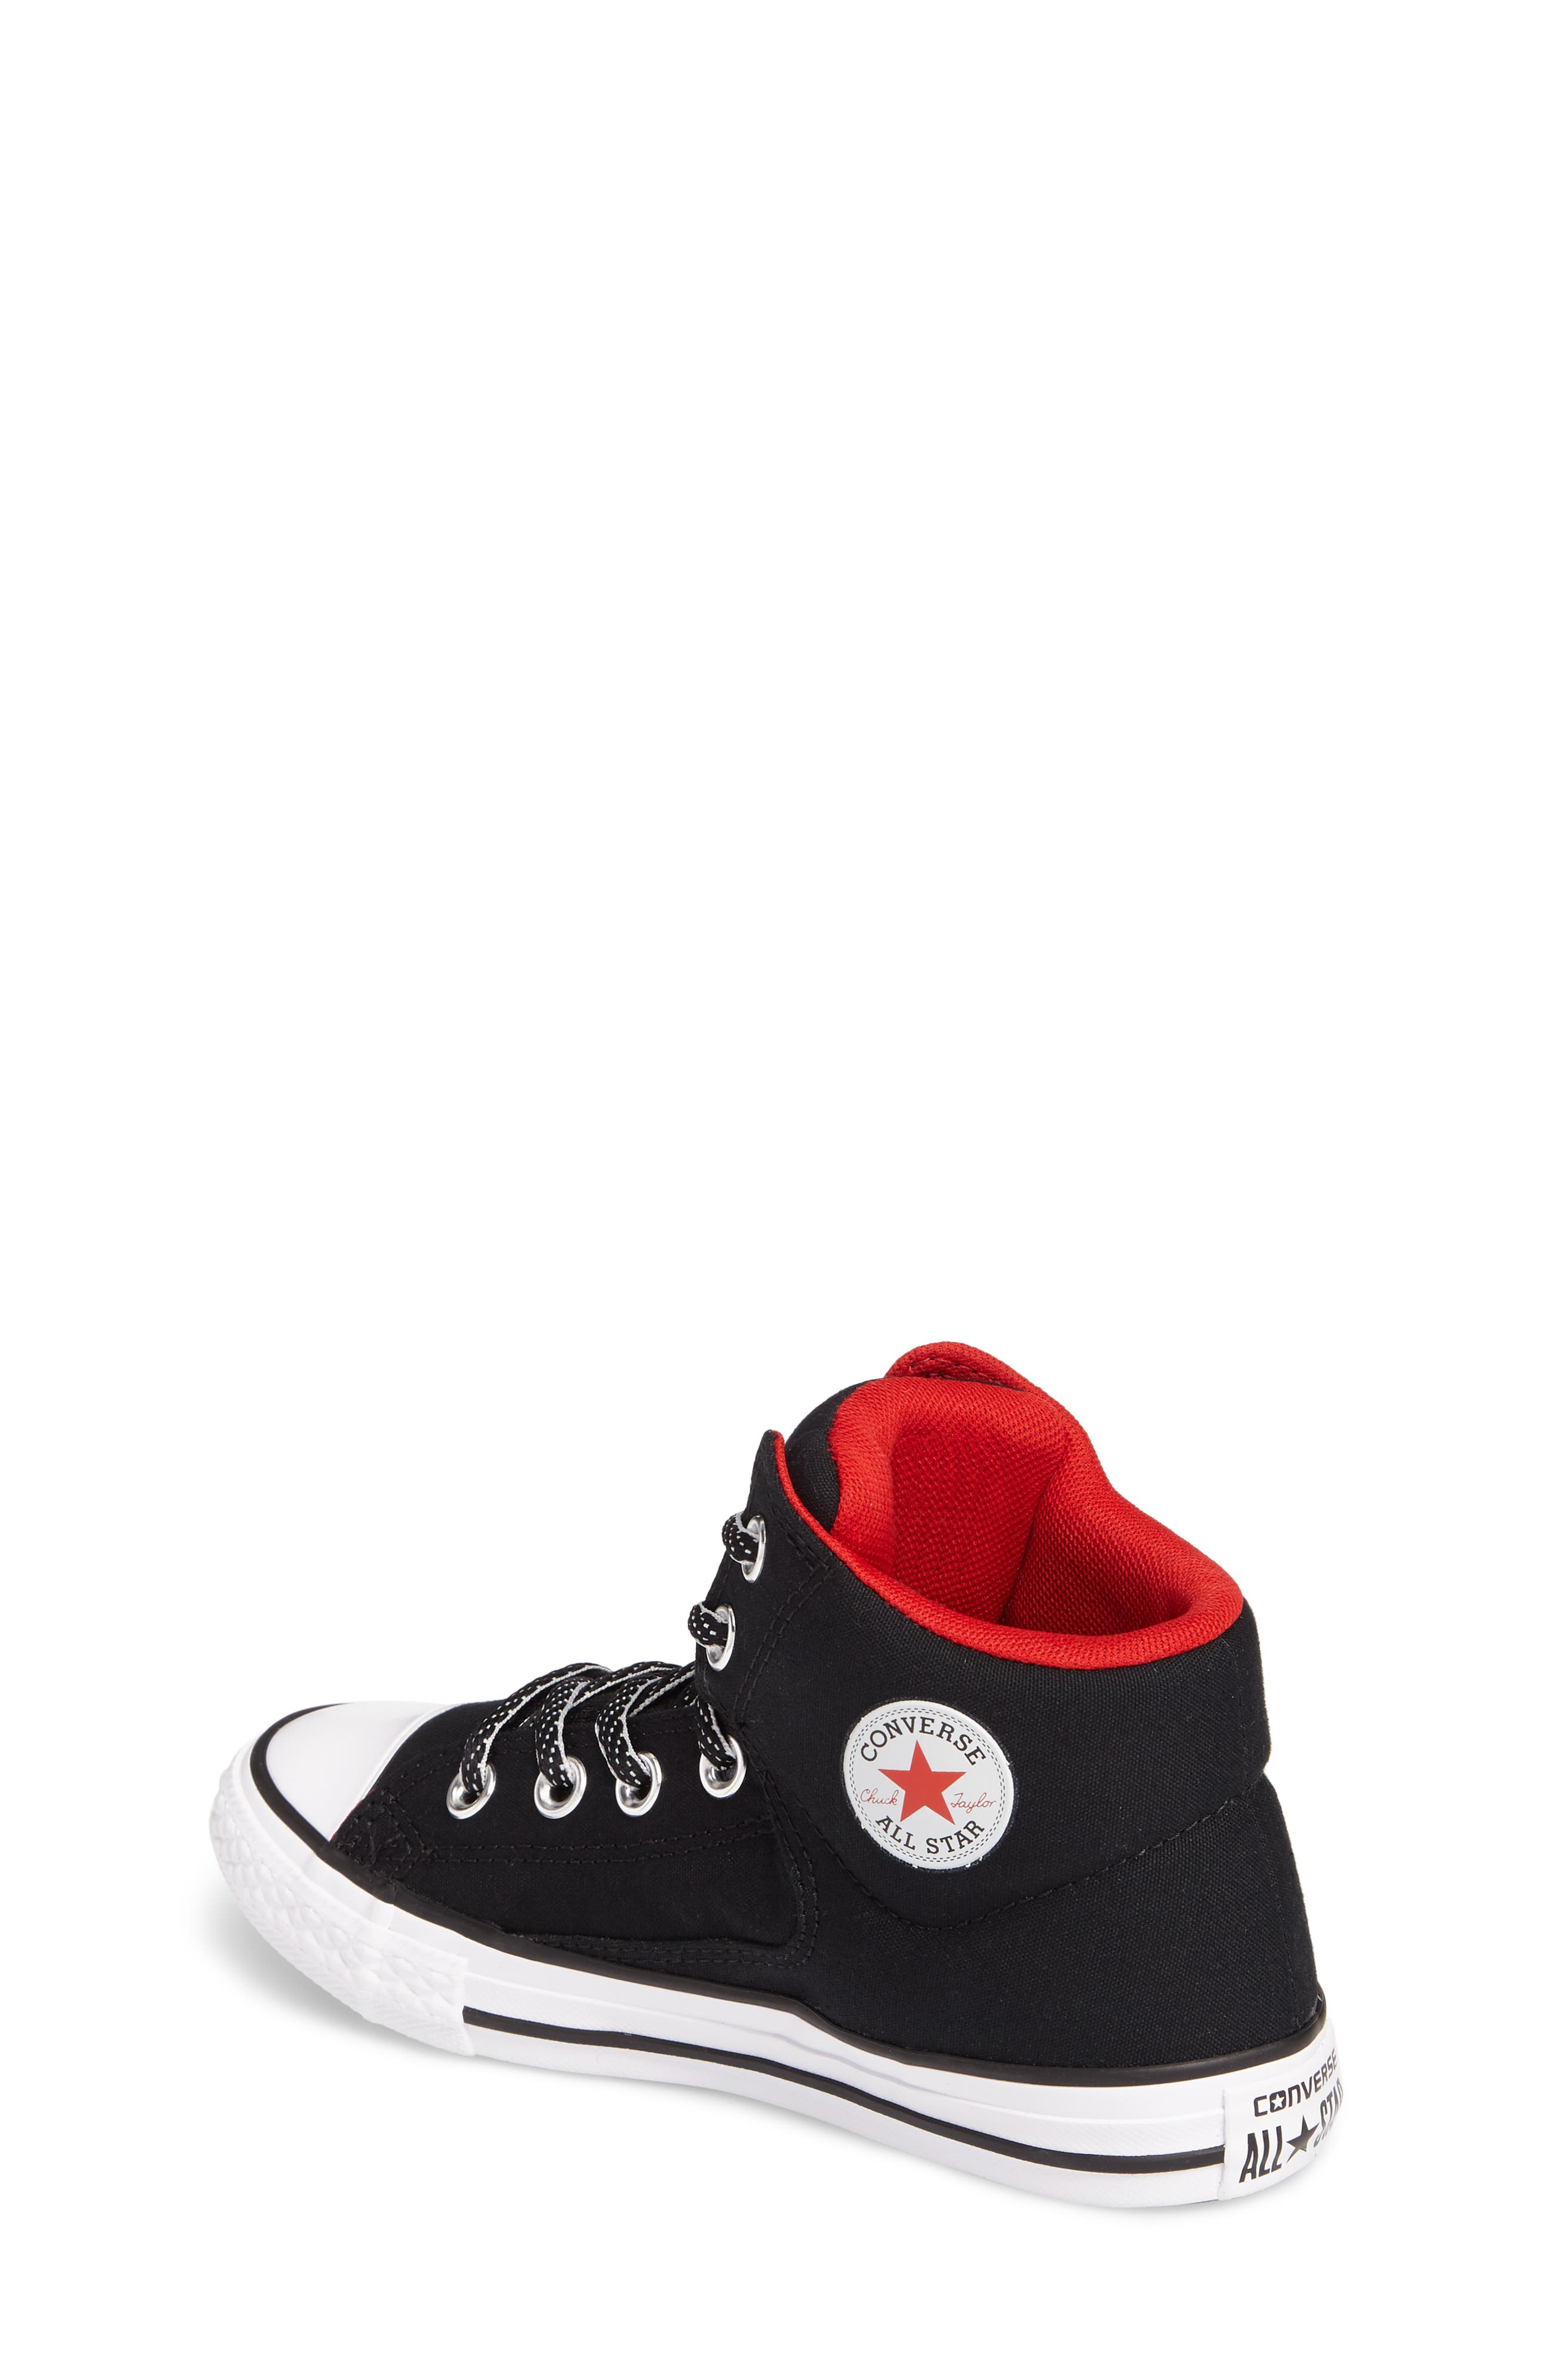 Chuck Taylor<sup>®</sup> All Star<sup>®</sup> High Street High Top Sneaker,                             Alternate thumbnail 2, color,                             Black Canvas